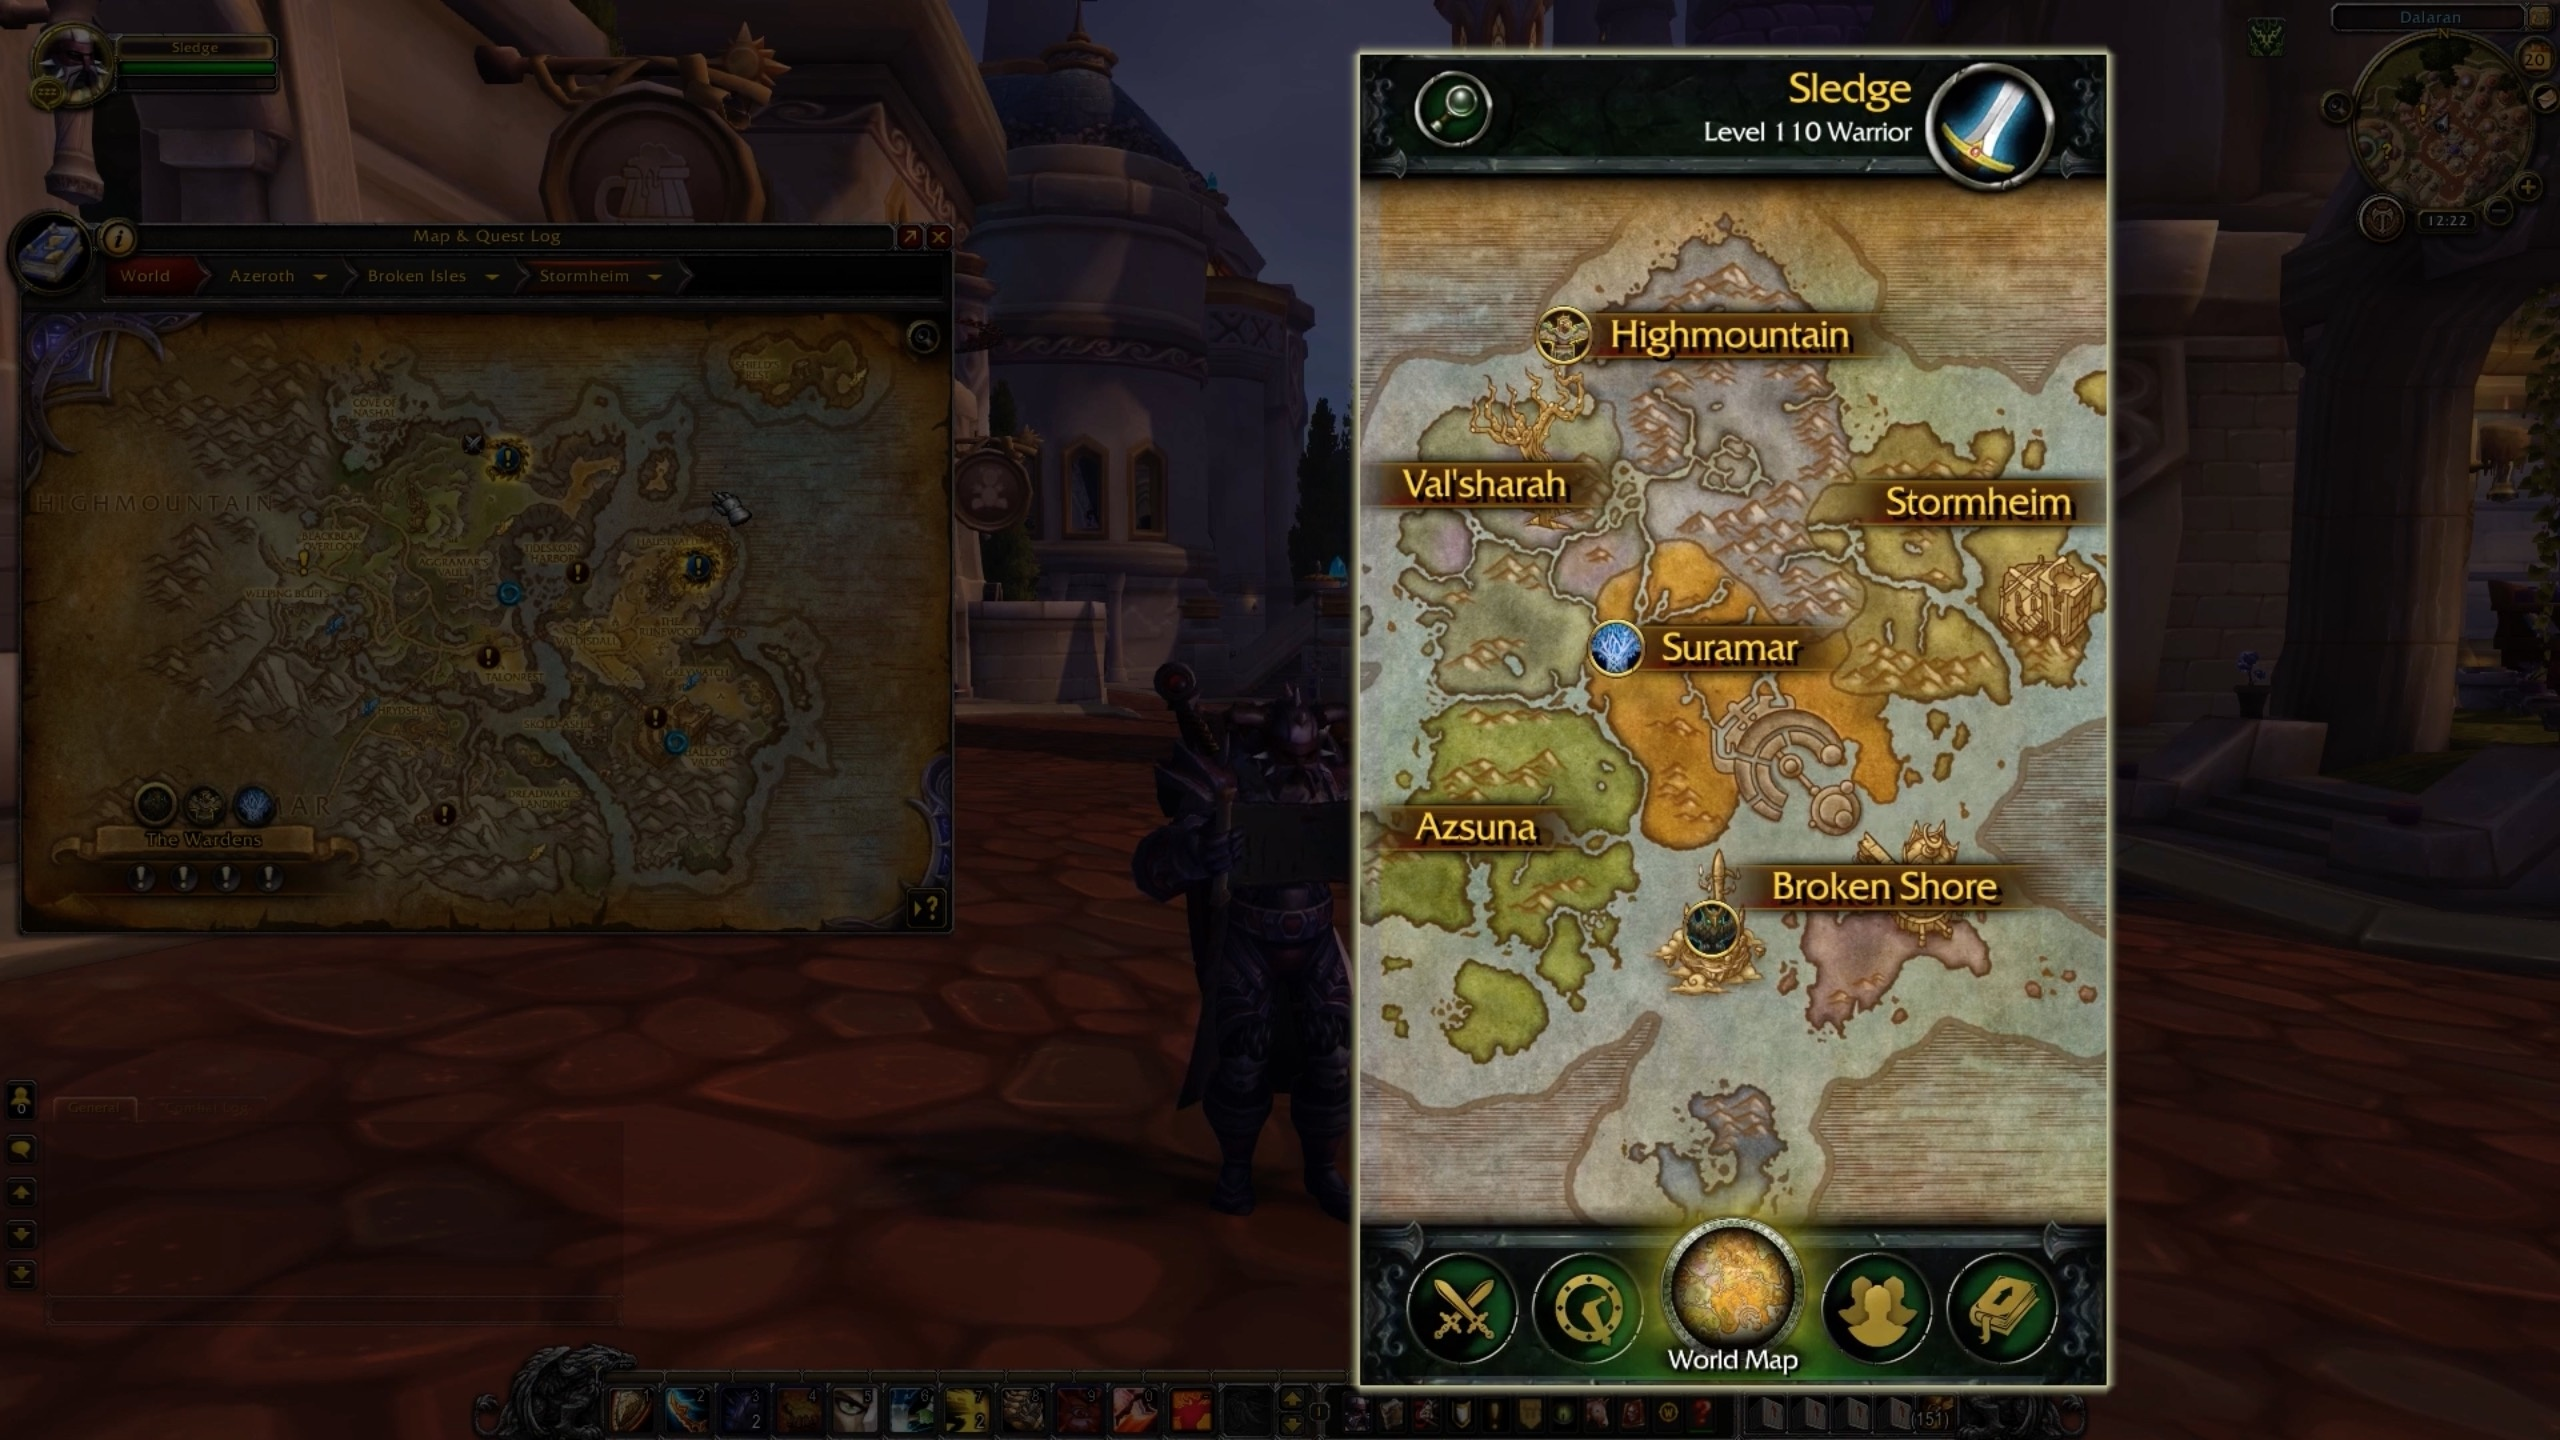 Legion companion app now live wowhead news the legion companion app is now live on android and ios allowing players to complete class hall missions on their phone and browse available world quests gumiabroncs Choice Image